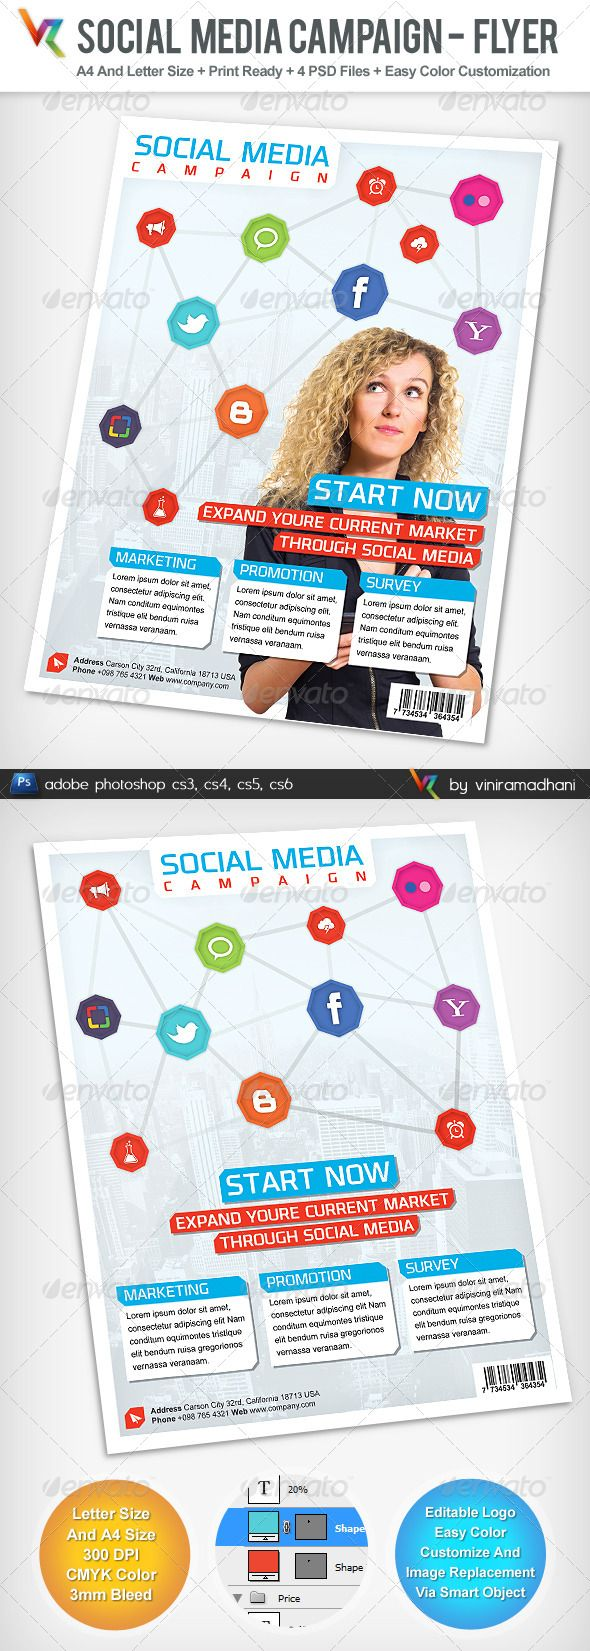 best ideas about advertising flyers photography social media campaign advertising flyer